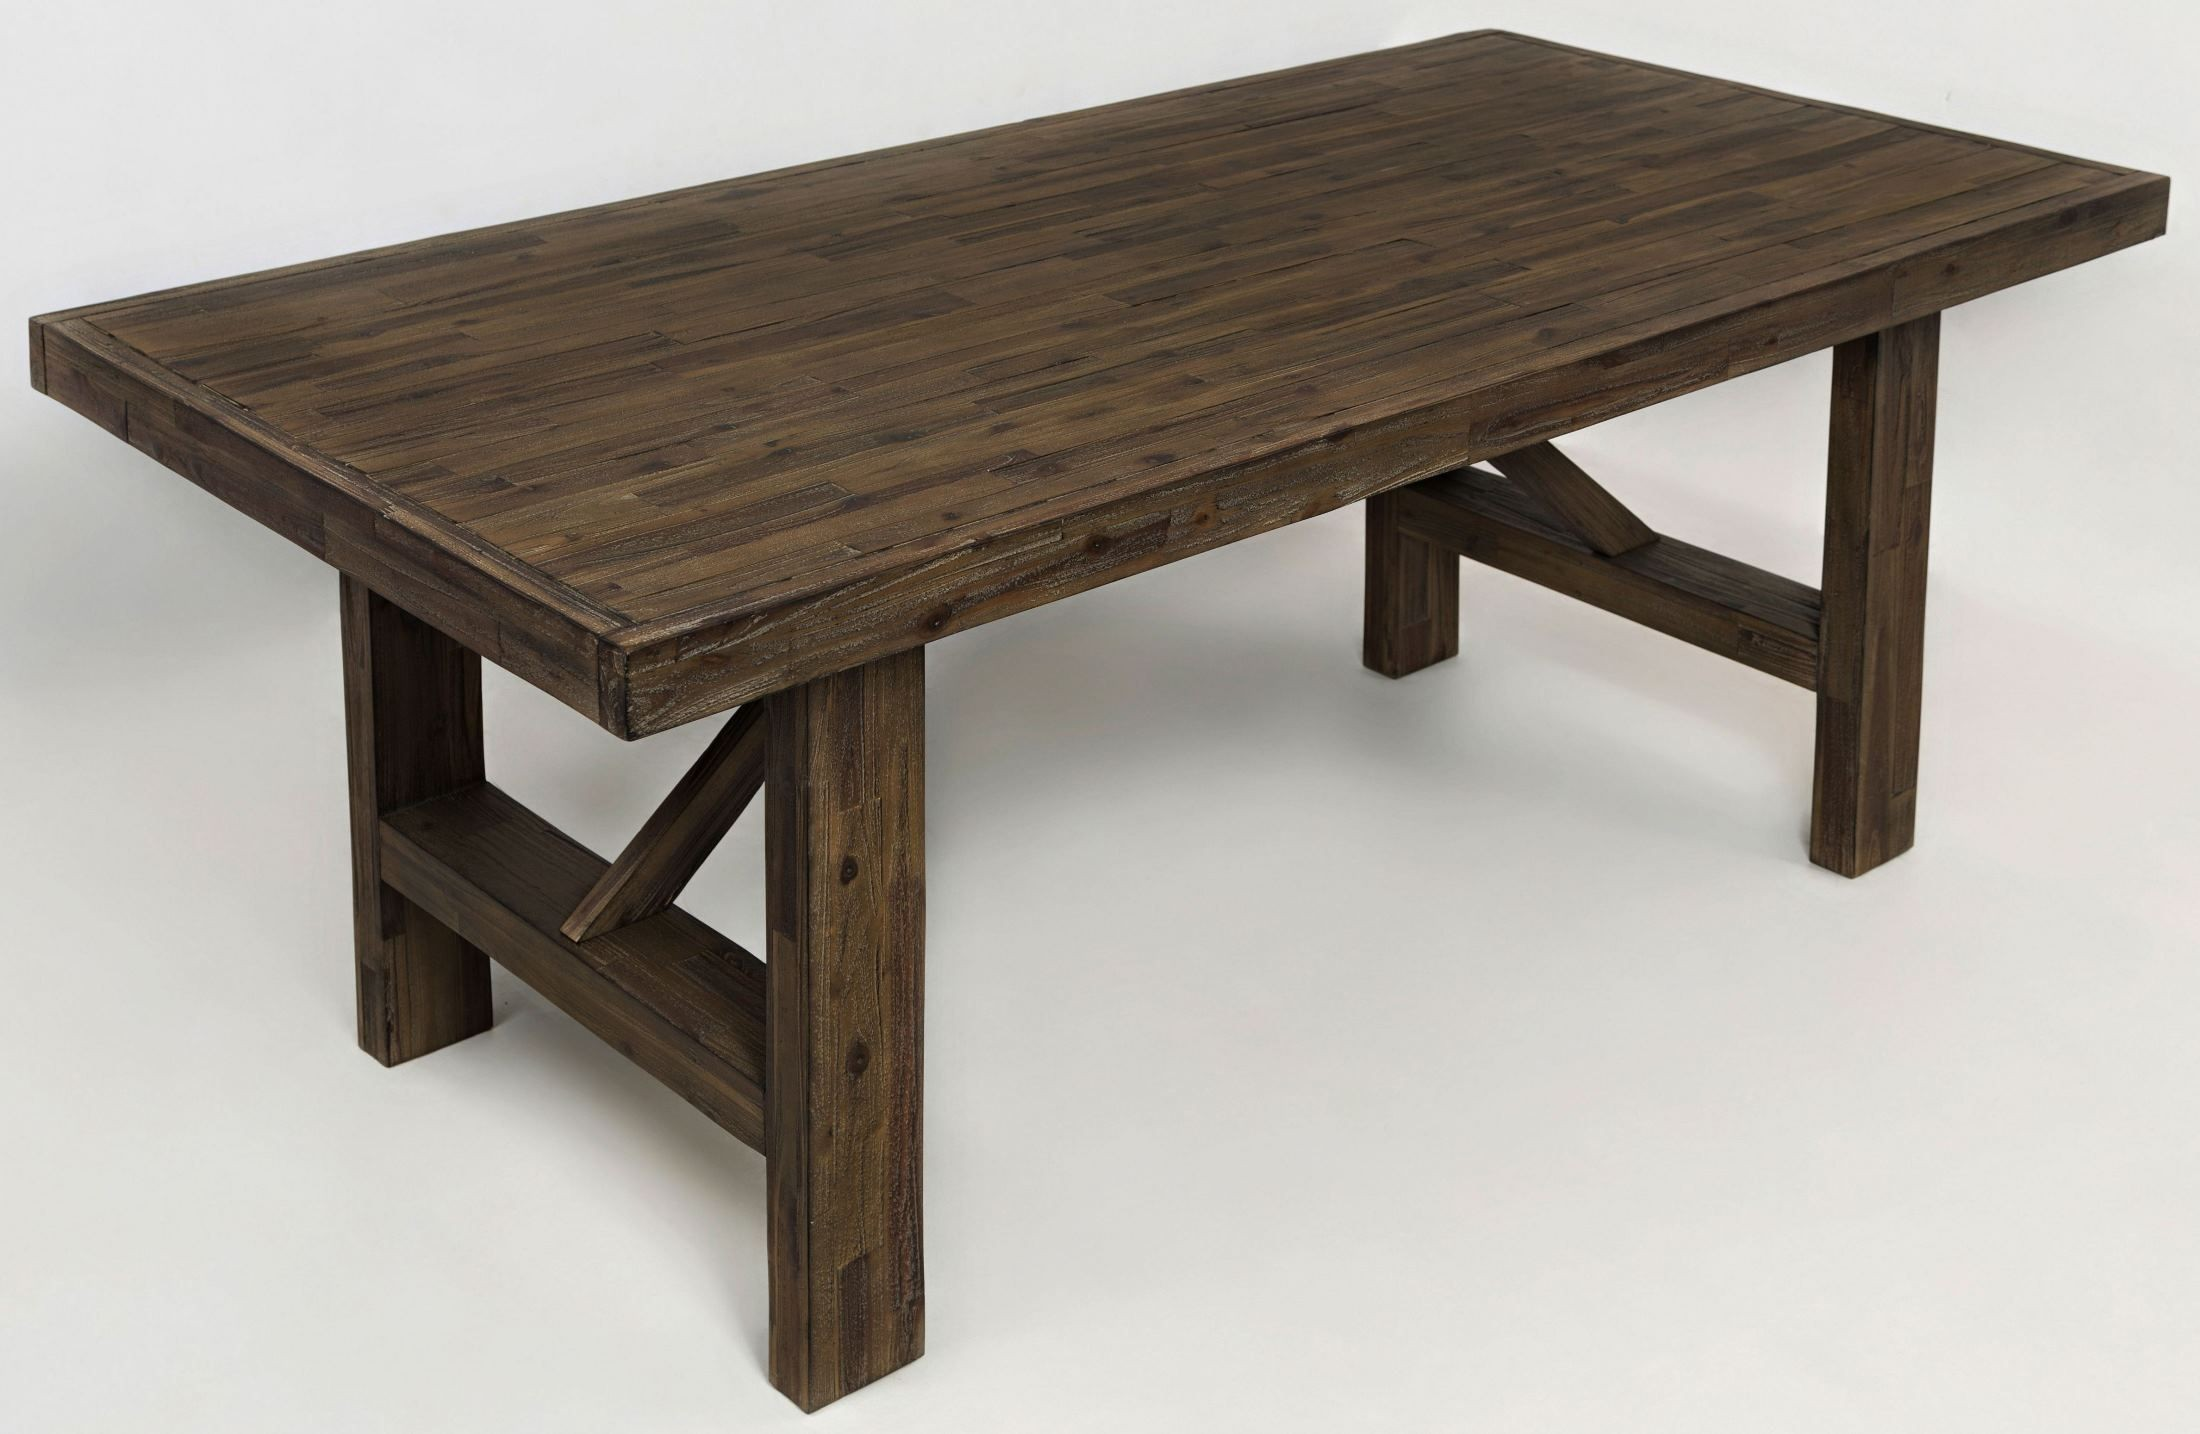 Hampton Road Trestle Dining Table from Jofran Coleman  : 872 79highangle from colemanfurniture.com size 2200 x 1434 jpeg 315kB